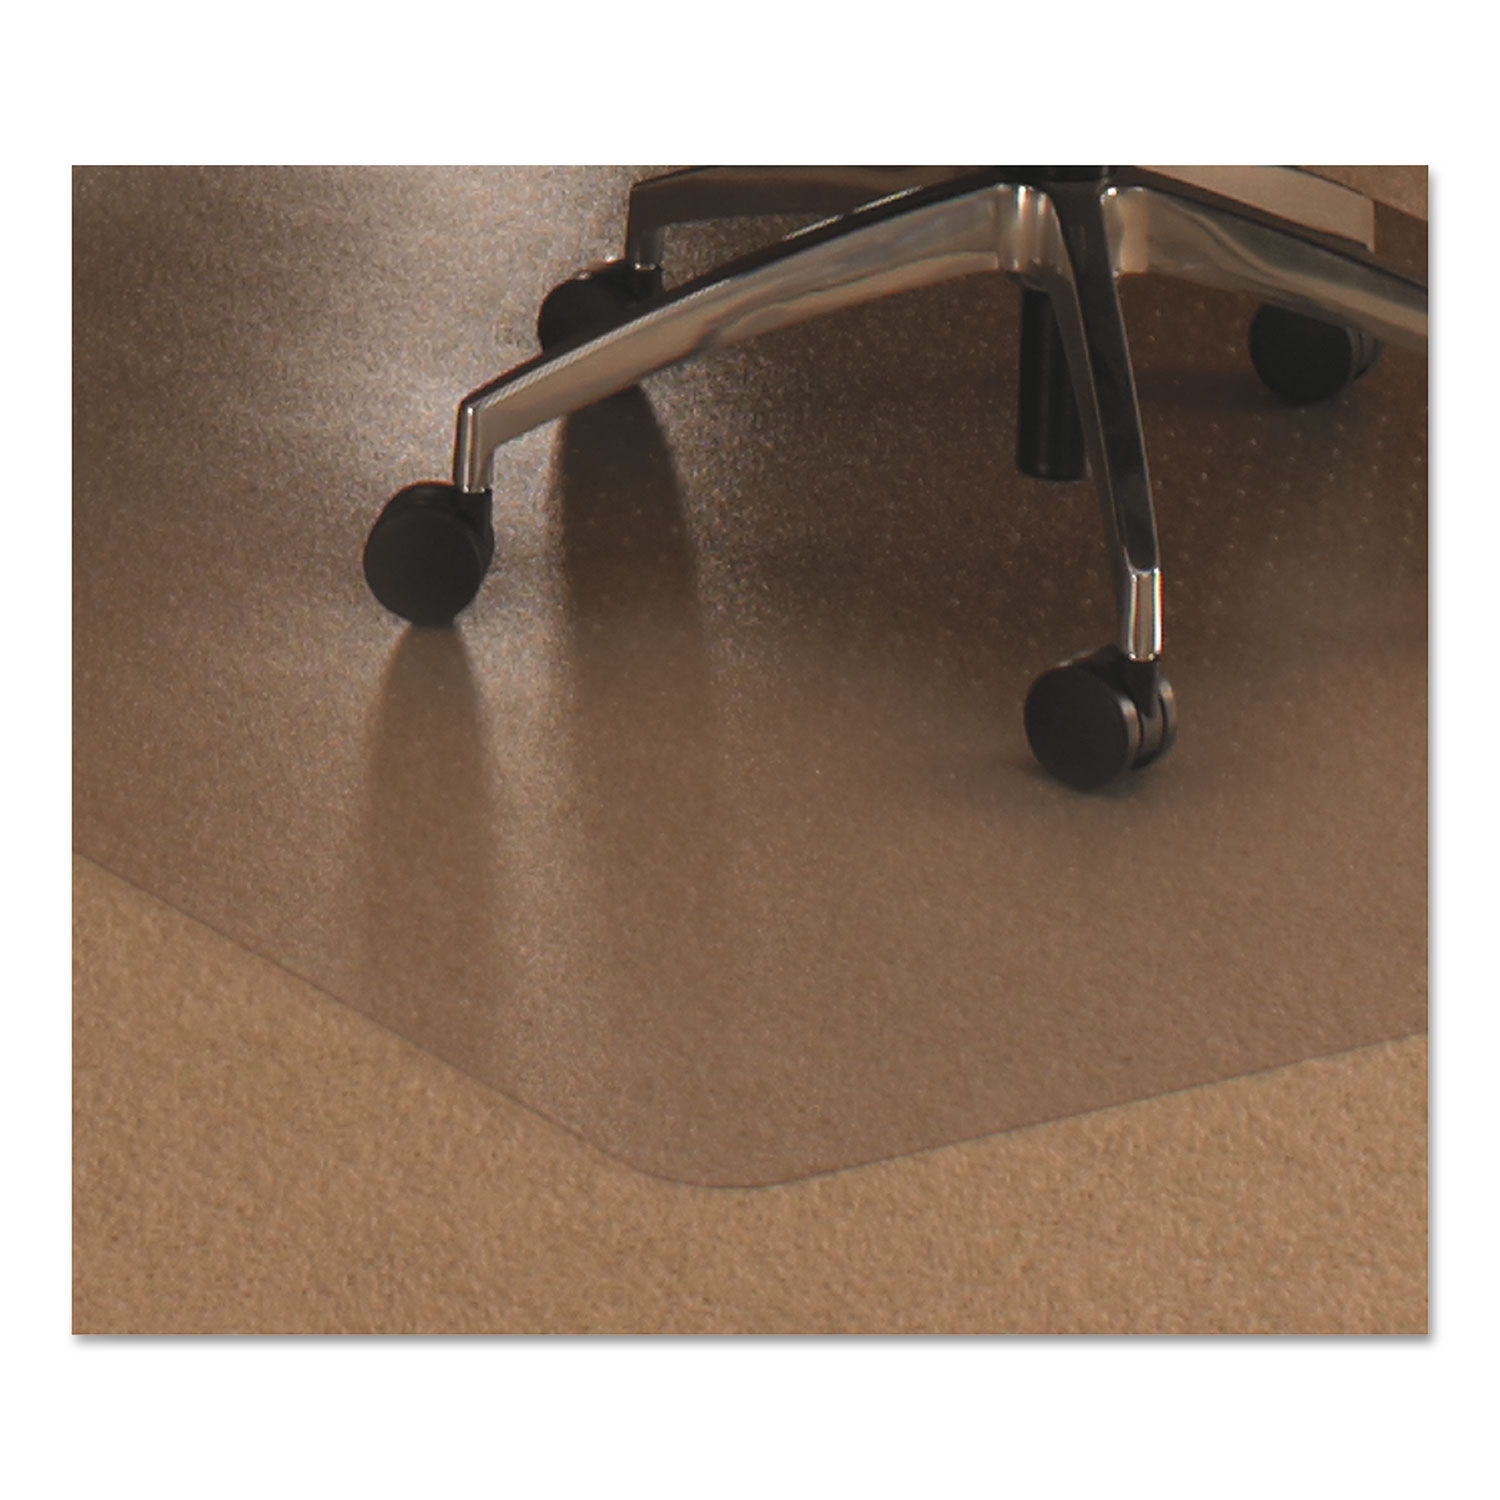 Chair Mat For Thick Carpet Cleartex Ultimat Polycarbonate Chair Mat For Low Medium